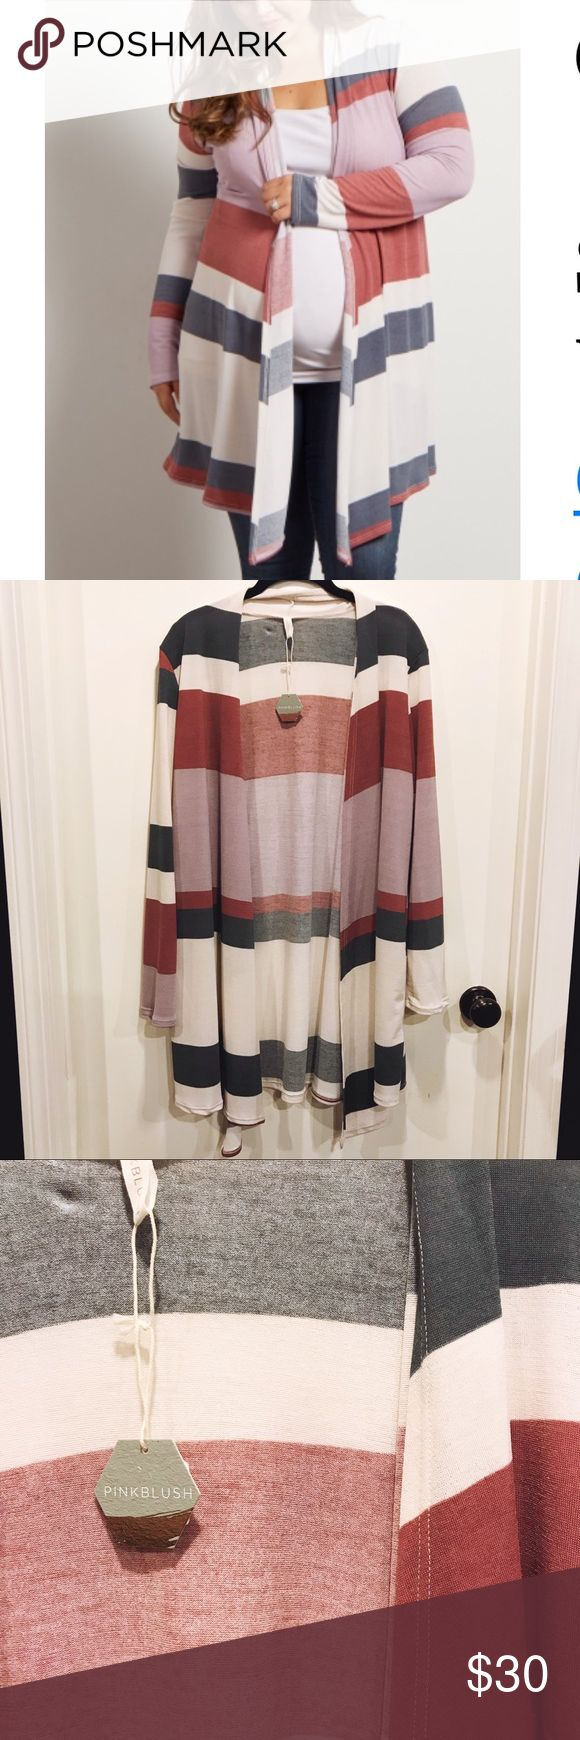 Pinkblush Maternity Open Cardigan Lightweight Pinkblush Maternity open cardigan. Plus size 1X. Pink color block. Great transitional piece that can be worn well after baby arrives. New with tags. Pinkblush Sweaters Cardigans